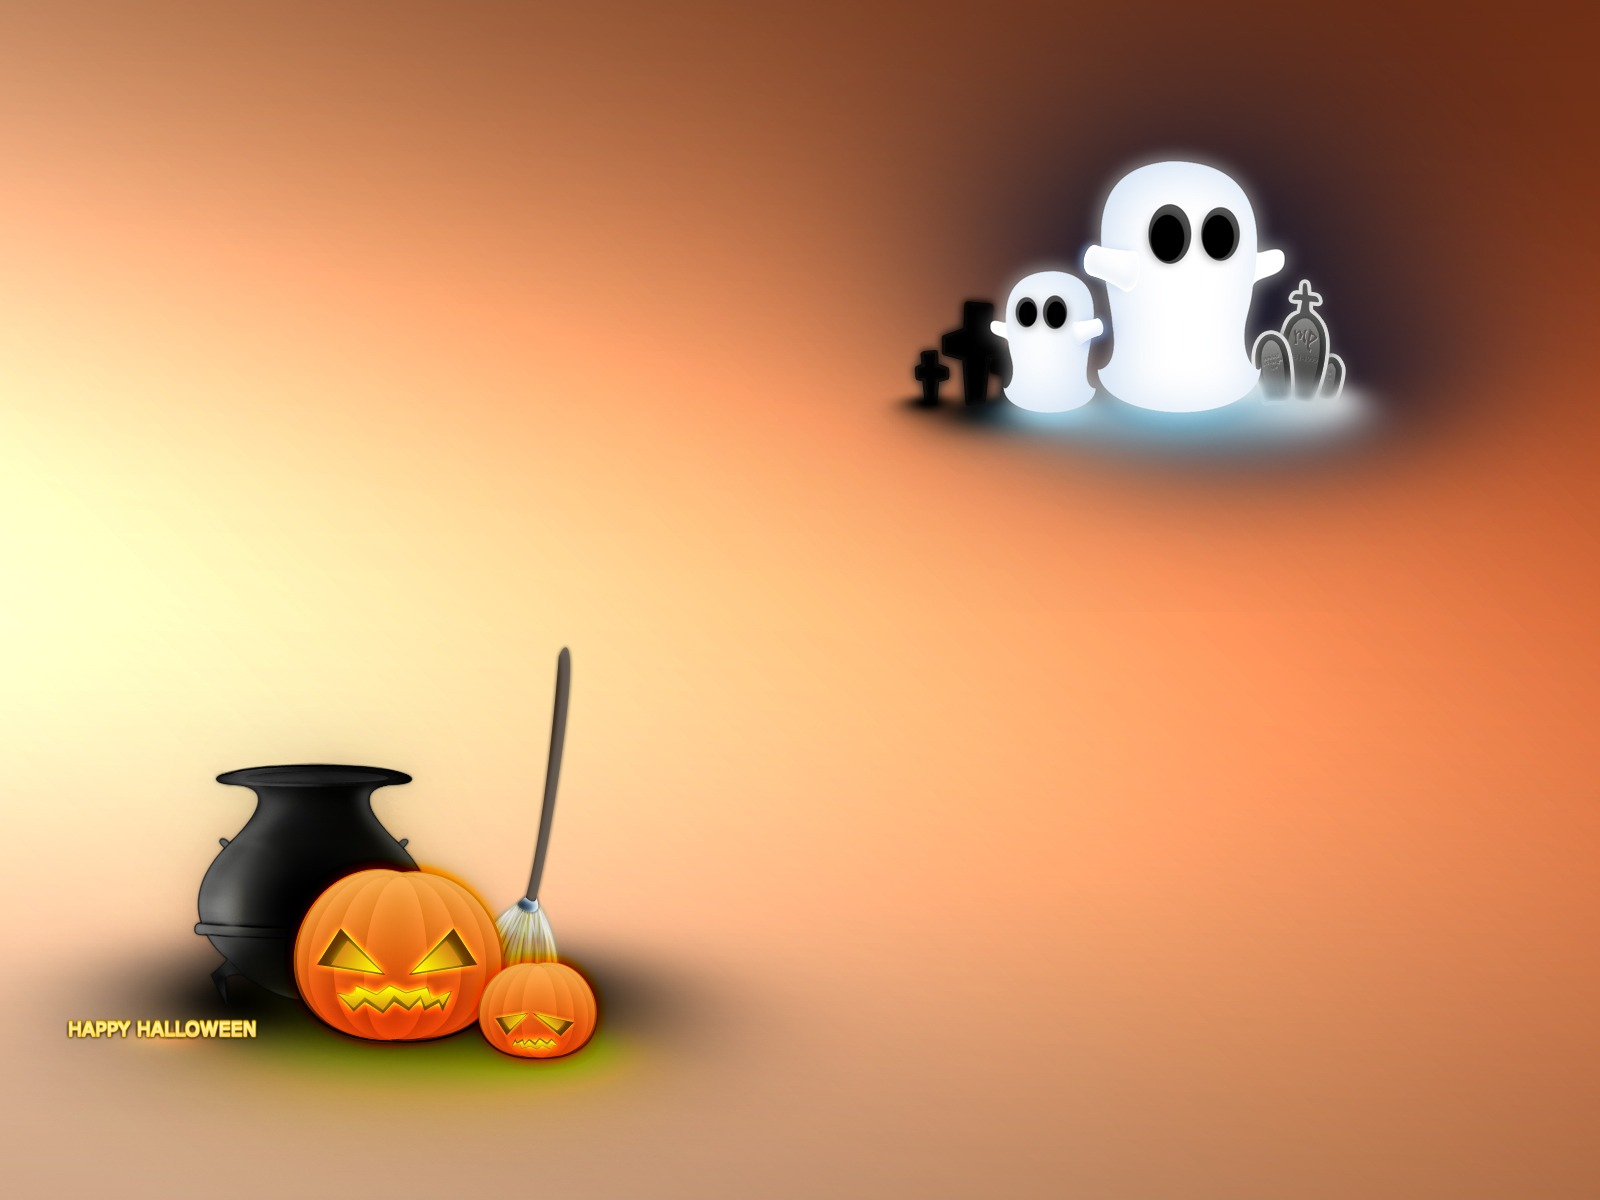 HalloweenWeb-Wallpapers-Fun-Ghosts.jpg